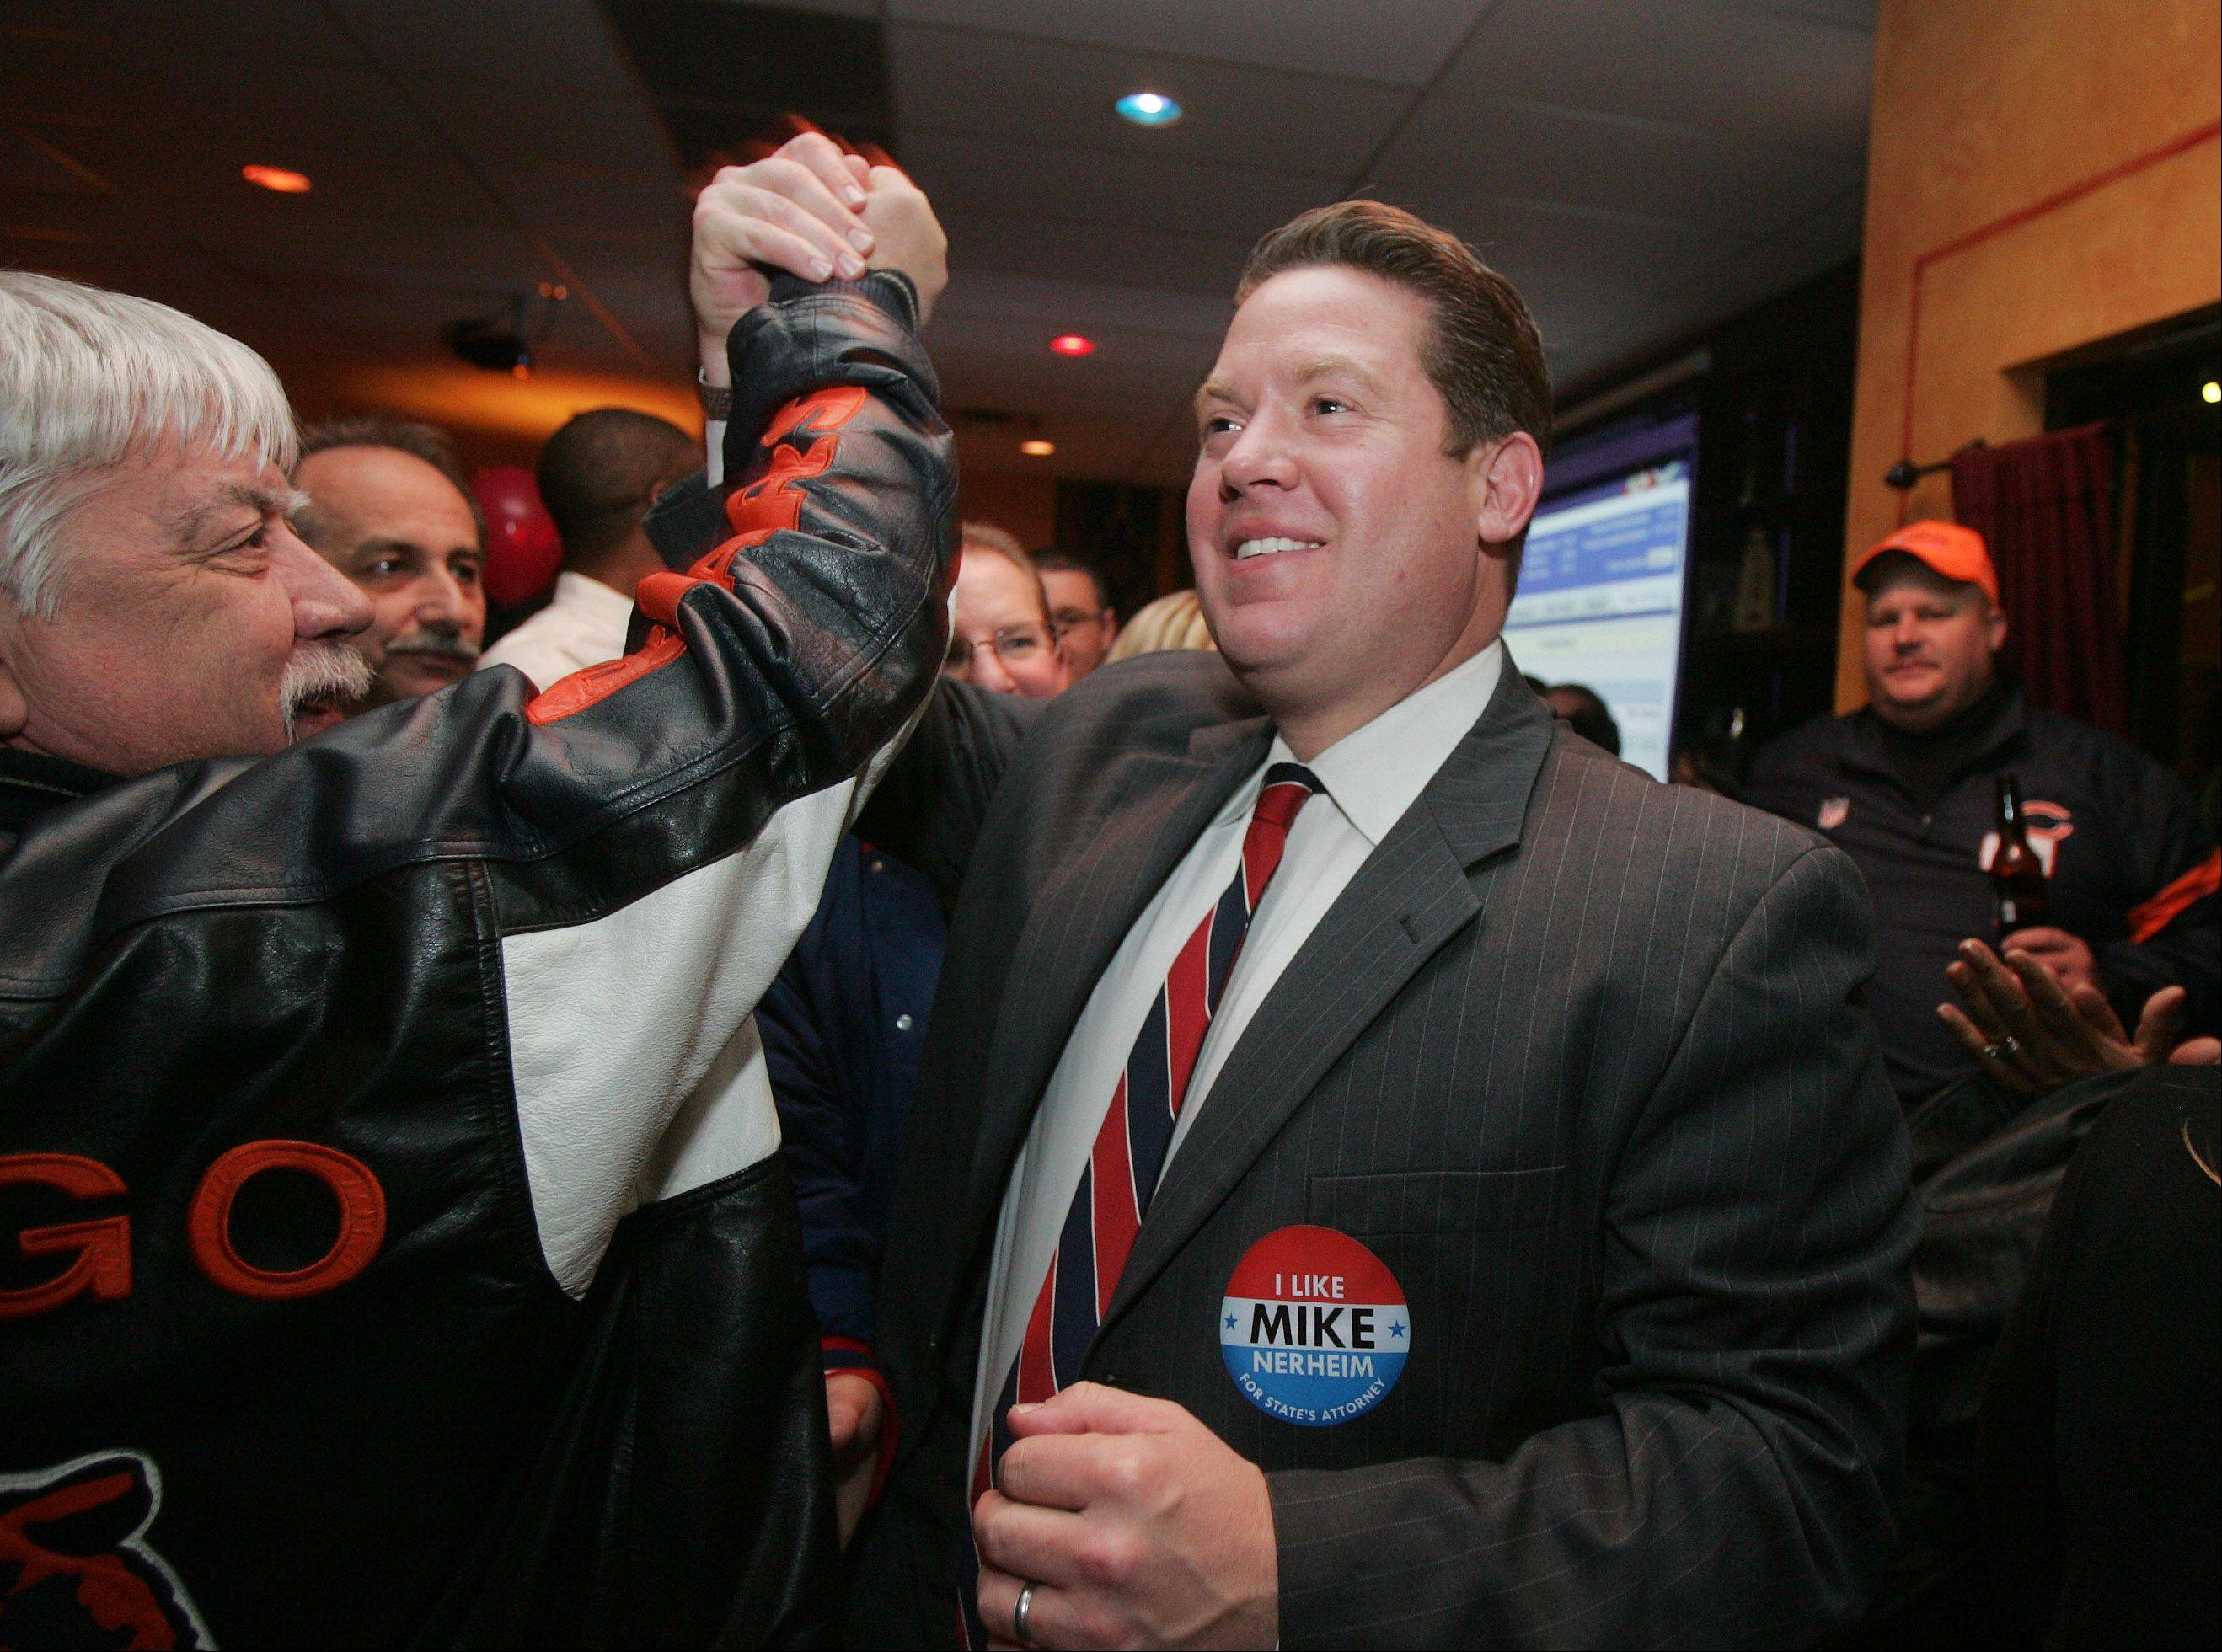 Republican candidate Mike Nerheim hand is lifted in victory by supporter Tom Briscoe before he gave his victory speech at Tacos El Norte in Gurnee Tuesday after he won the Lake County State's Attorney race.